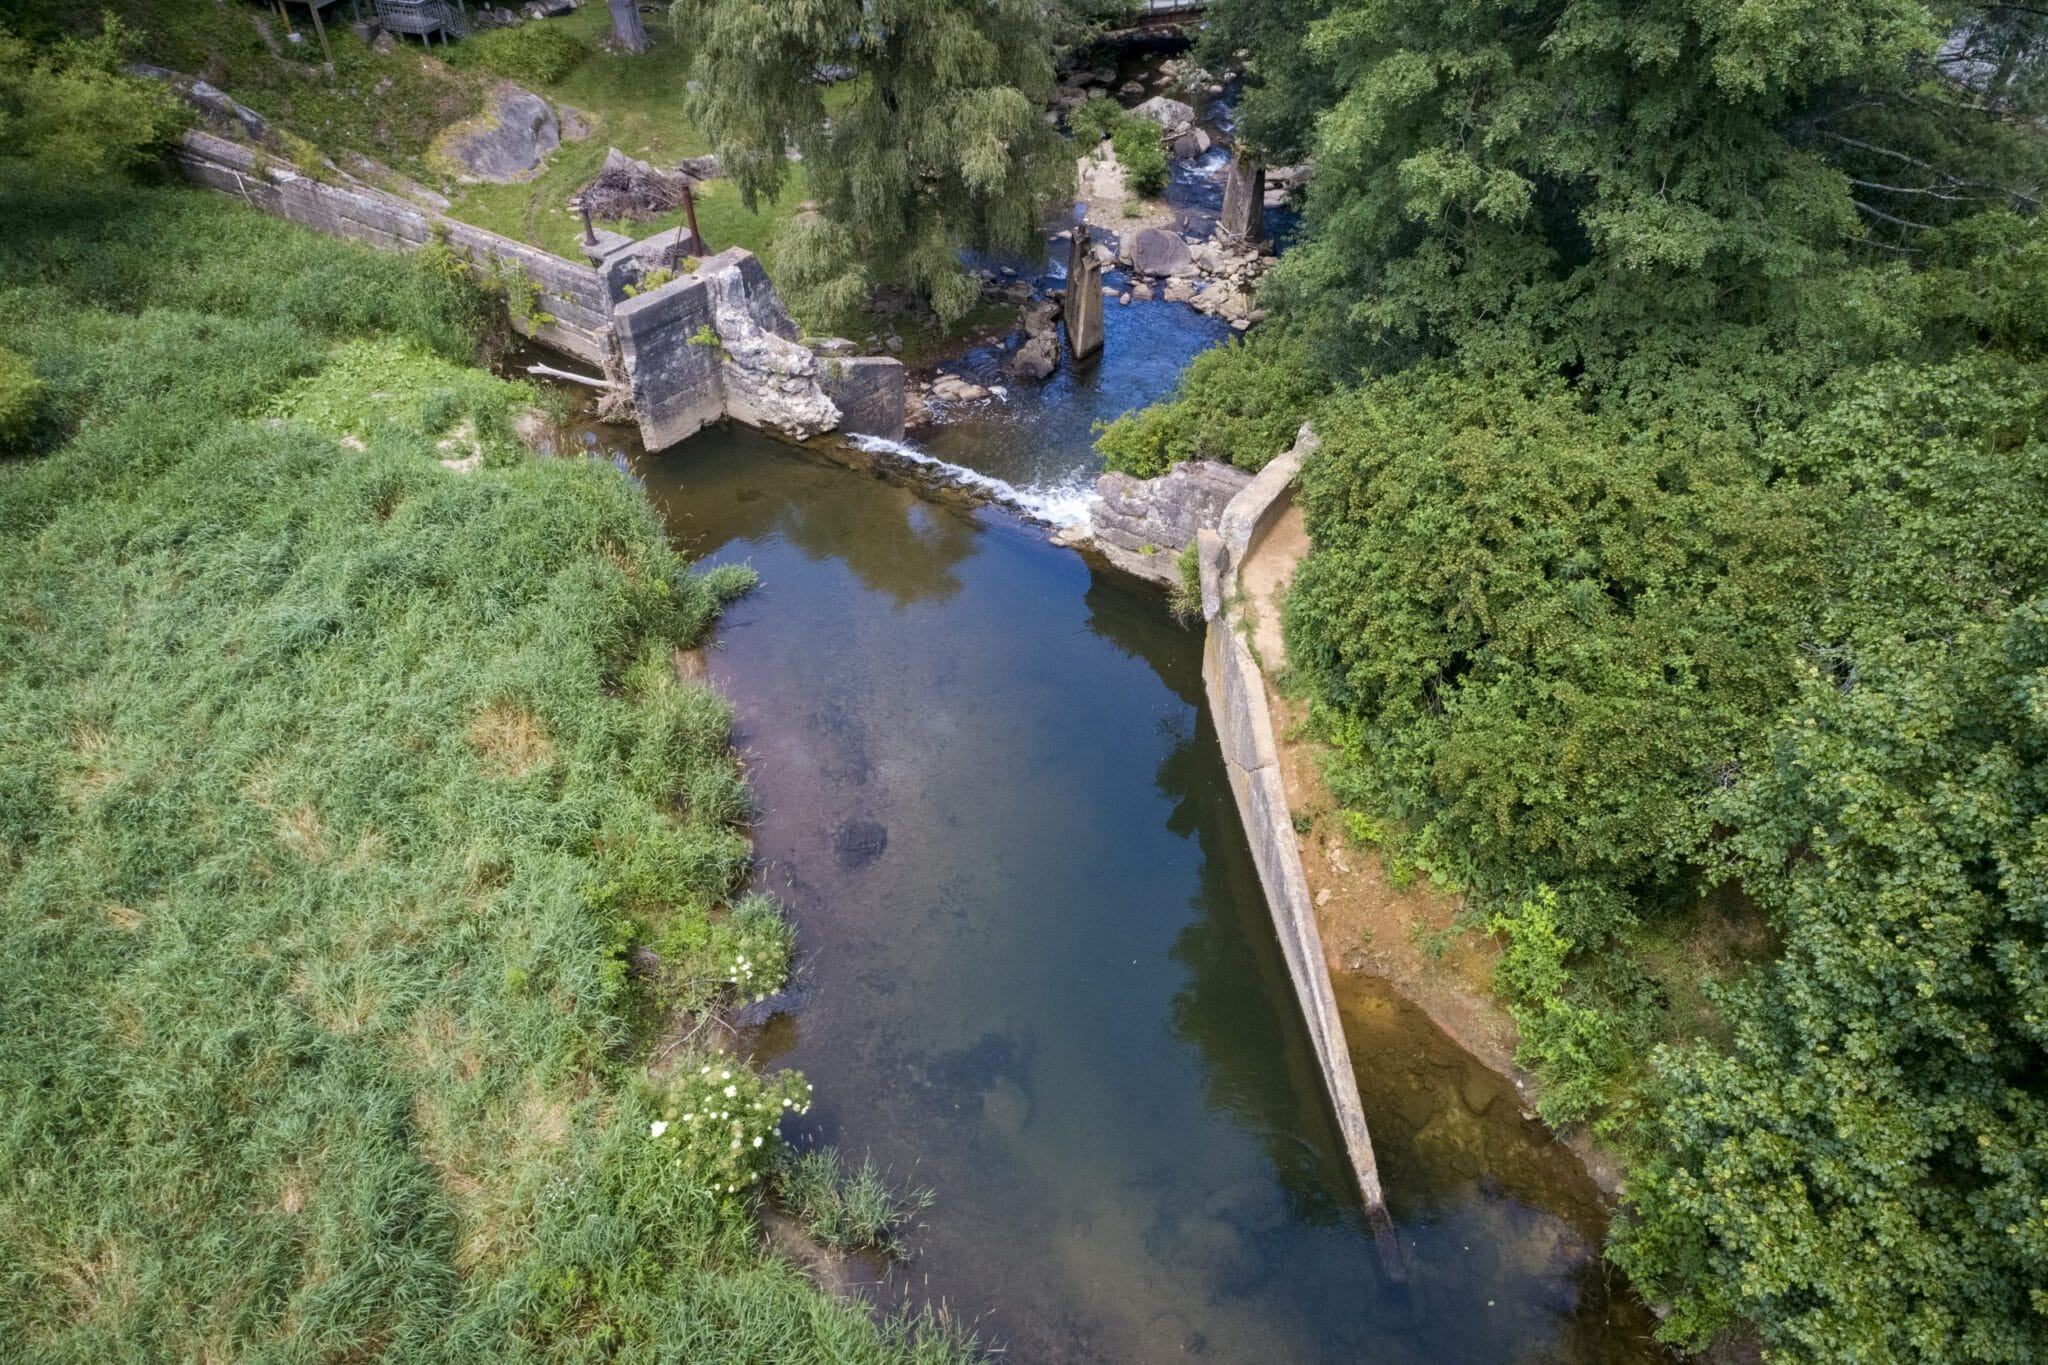 App State's NRLP awarded $1.1M-plus in grant funding for Payne Branch restoration project